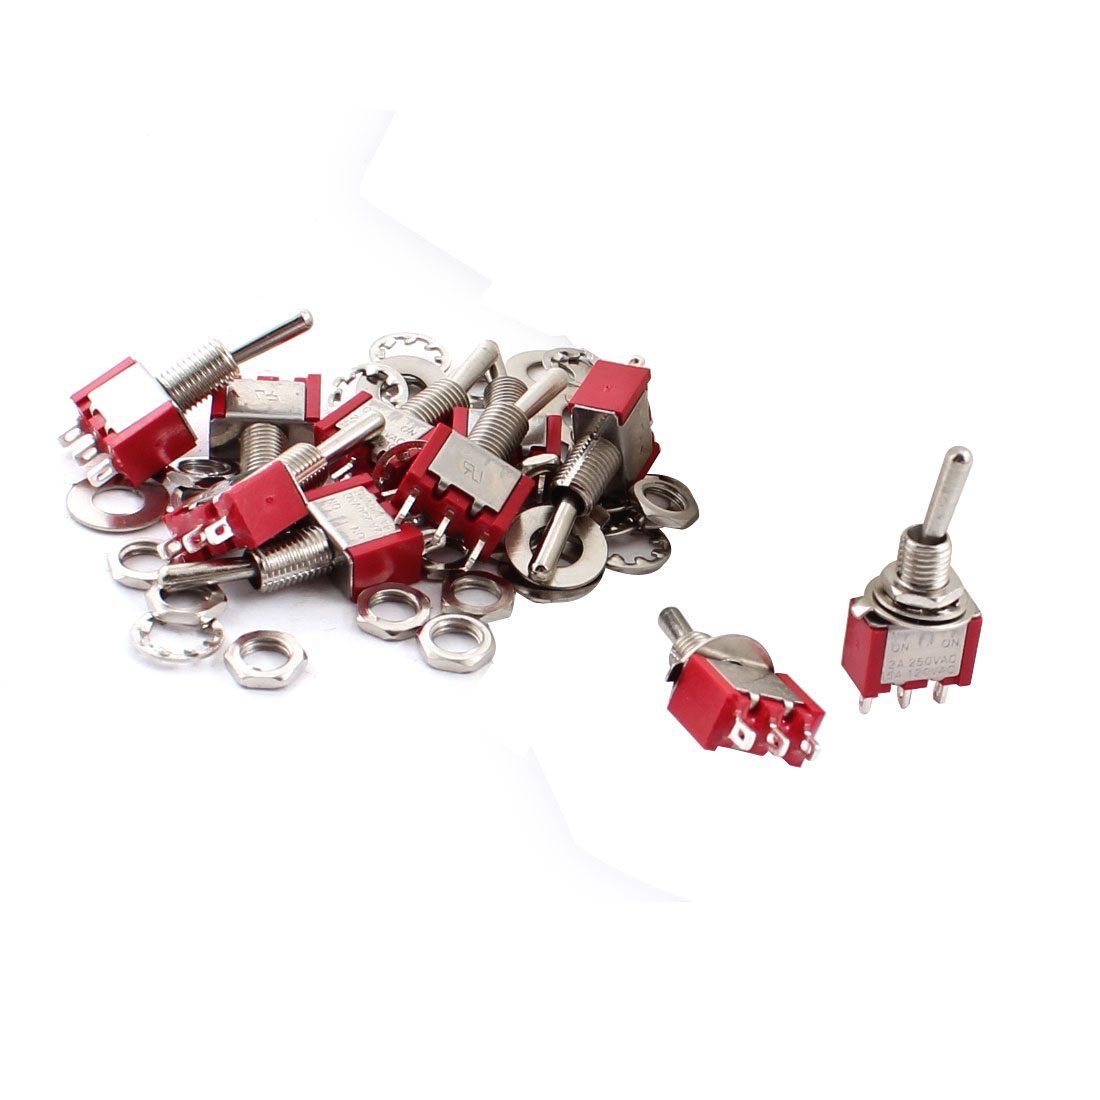 10 Pcs AC 250V/2A 120V/5A SPDT Red Metal 2 Position ON/ON 6mm Thread 3 Terminals Toggle Switch Red